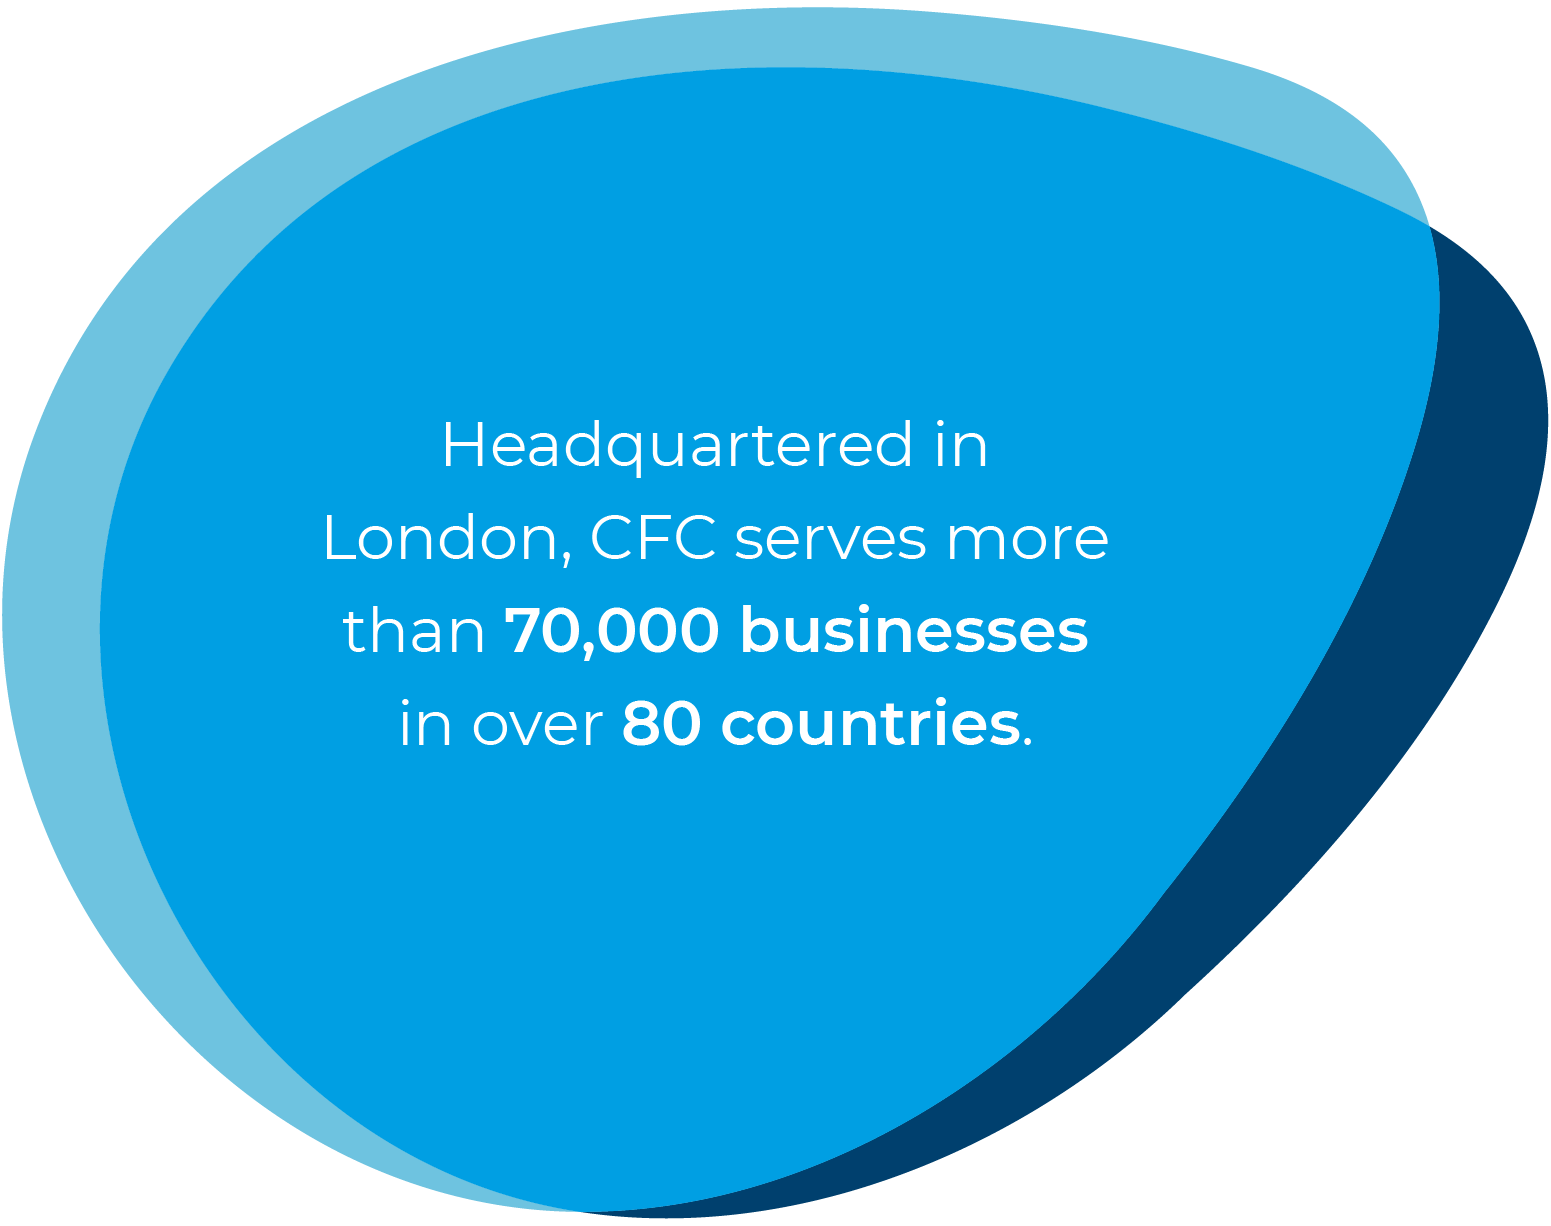 Headquartered in London, CFC serves more than 70,000 businesses in over 80 countries